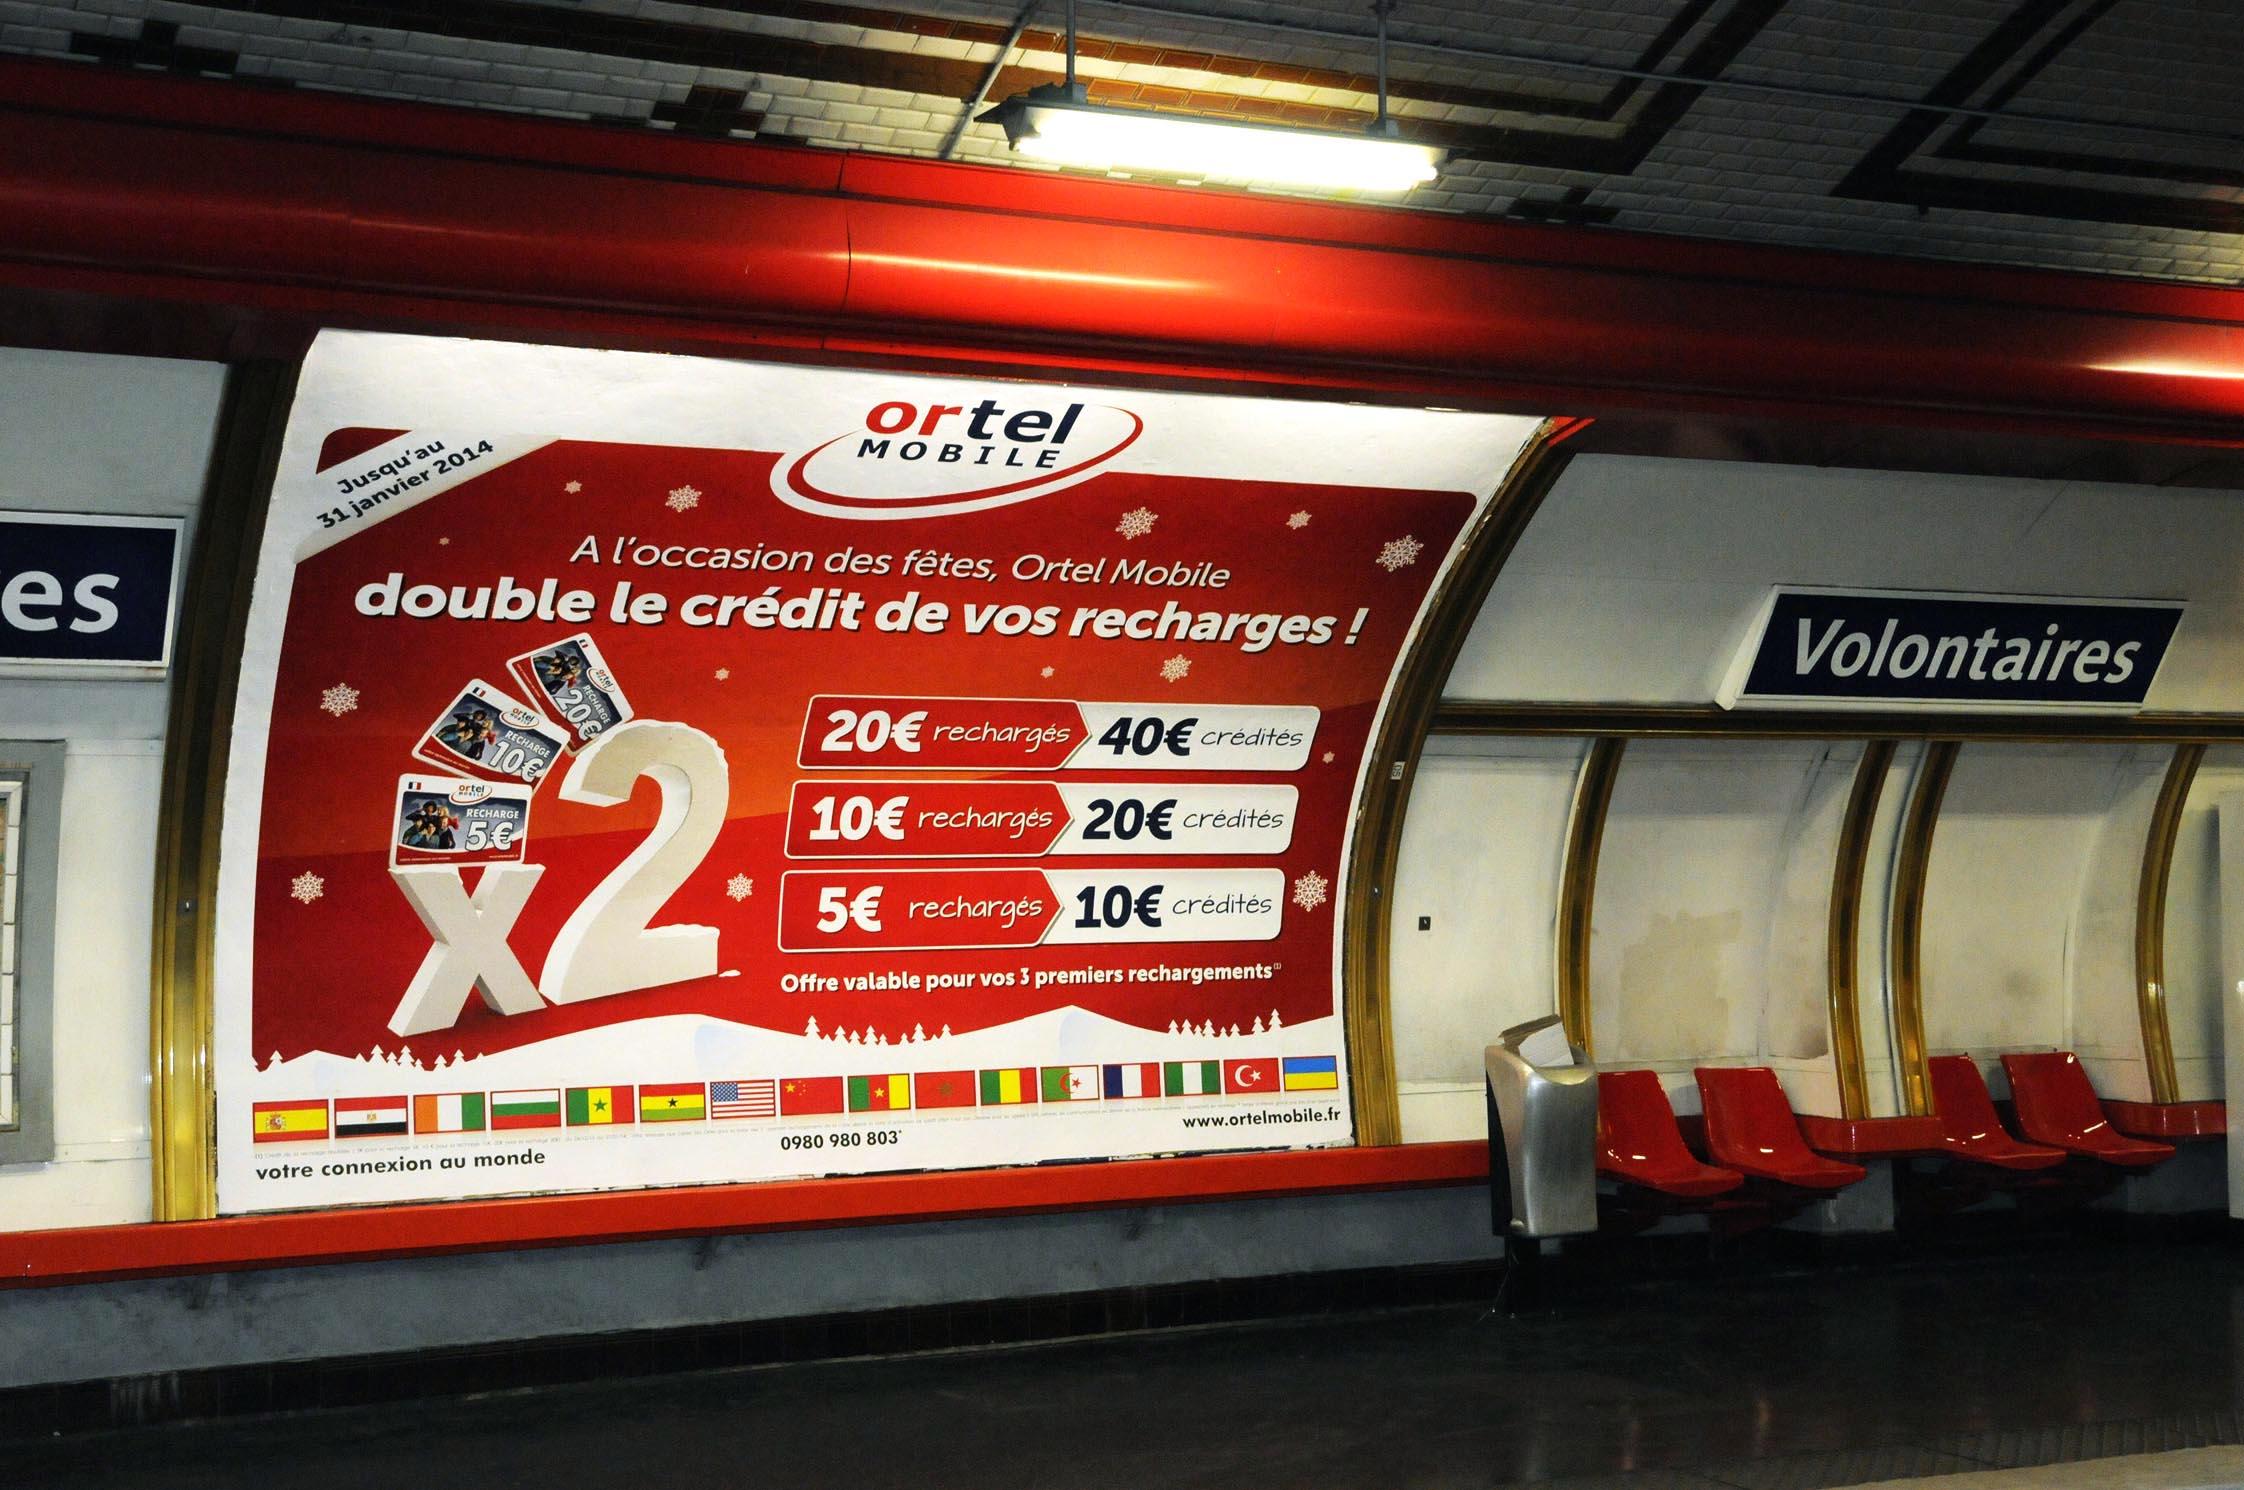 Paris_Metro_Ortel_France_Advertising_1